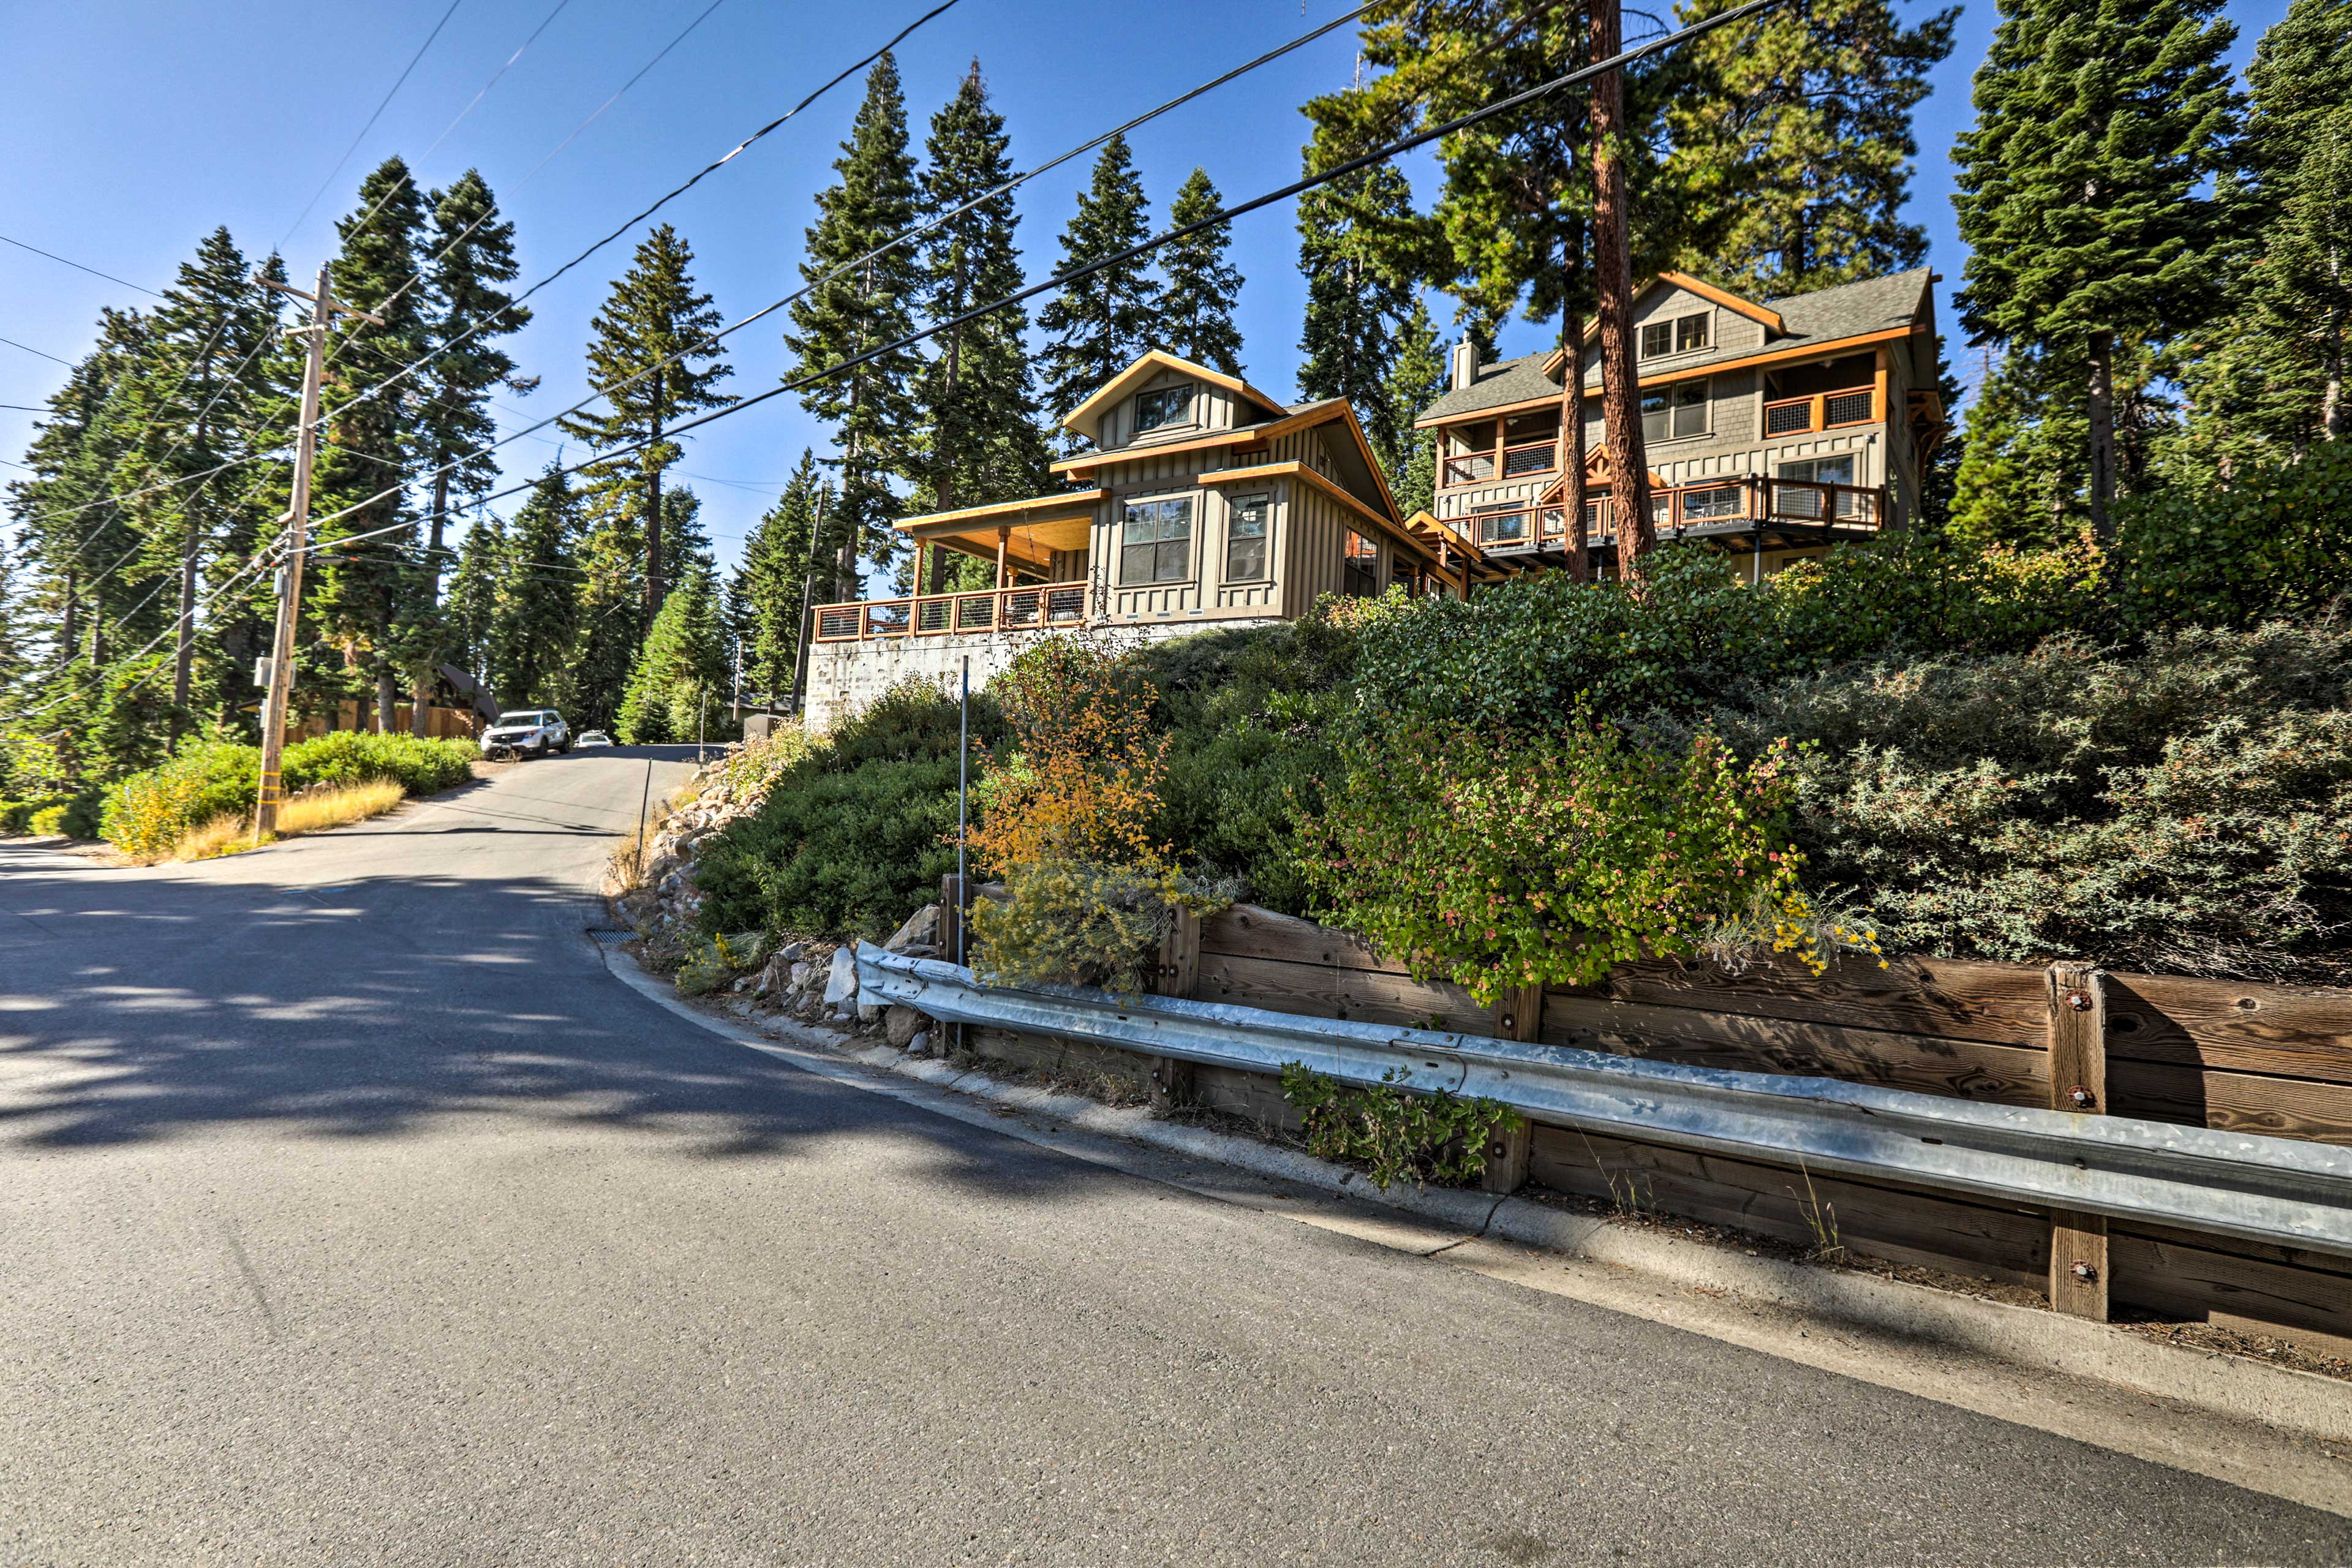 The Carnelian Bay home is ideally located for Tahoe adventures.